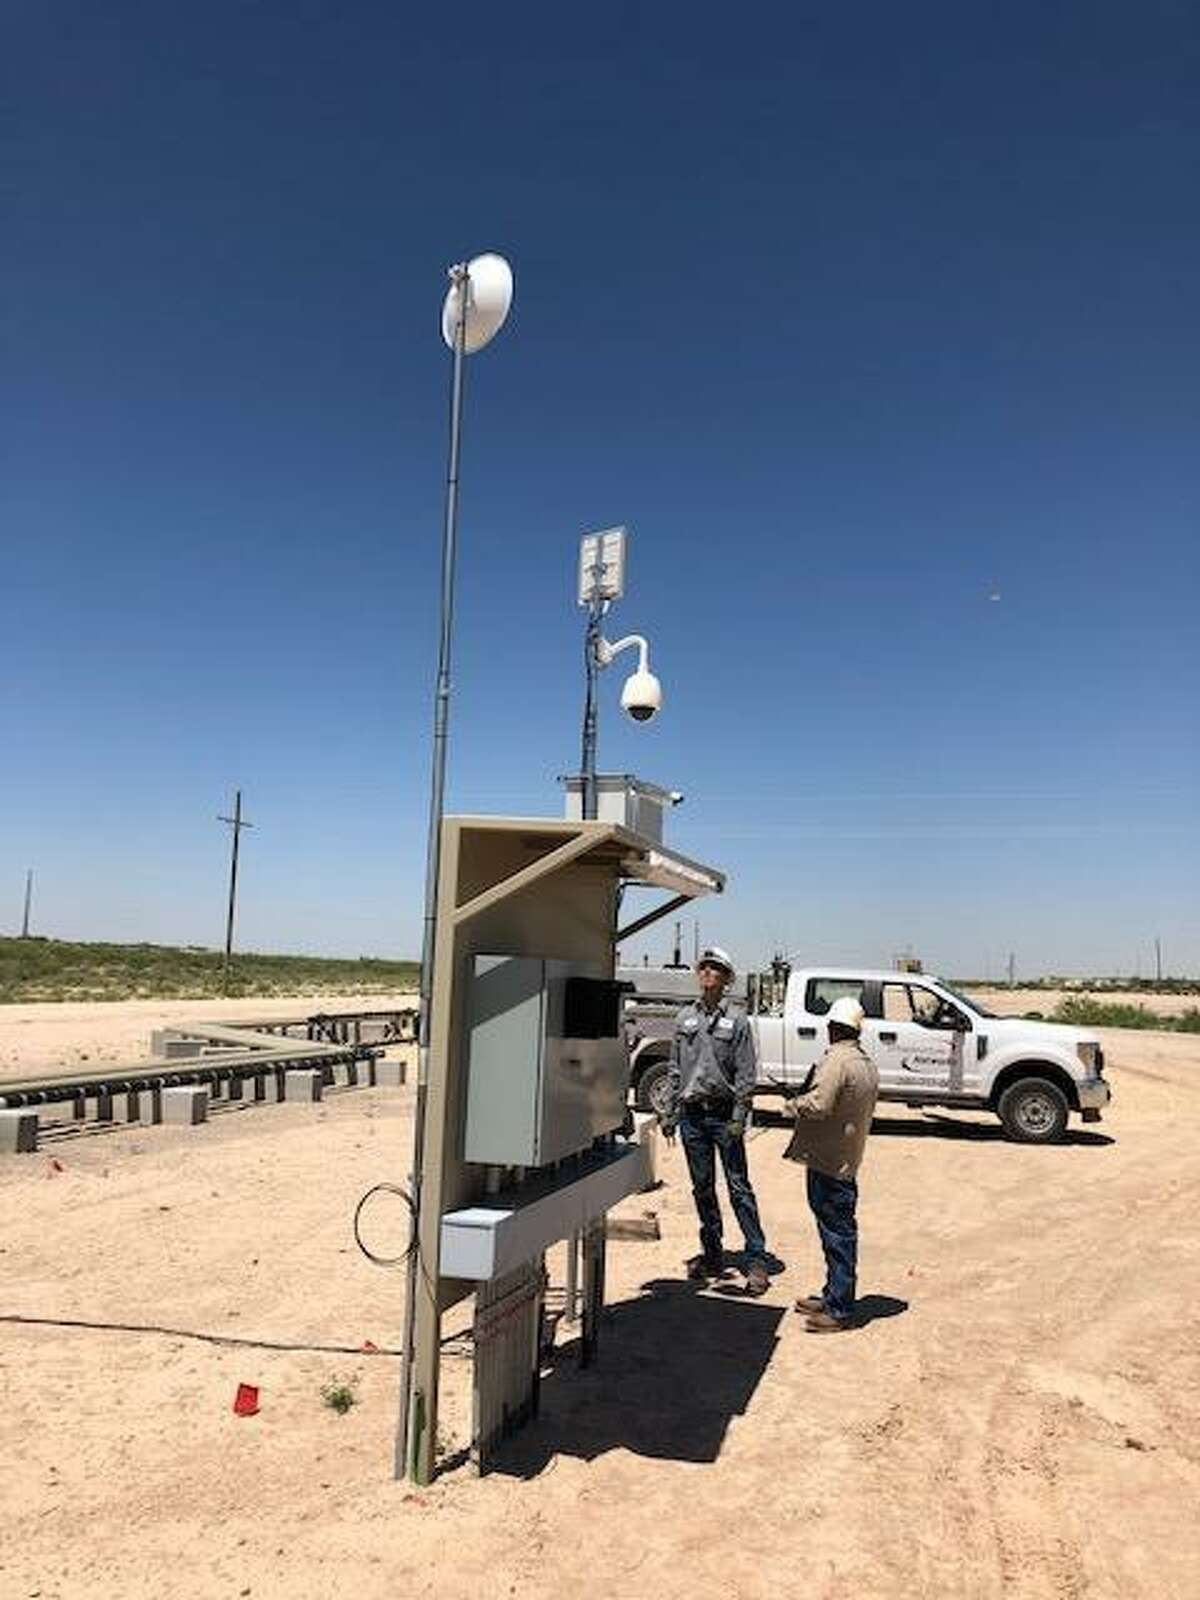 Headquartered in Houston, Infrastructure Networks provides wireless data service to drilling rig operators, completion crews and production sites in oil fields across the United States.